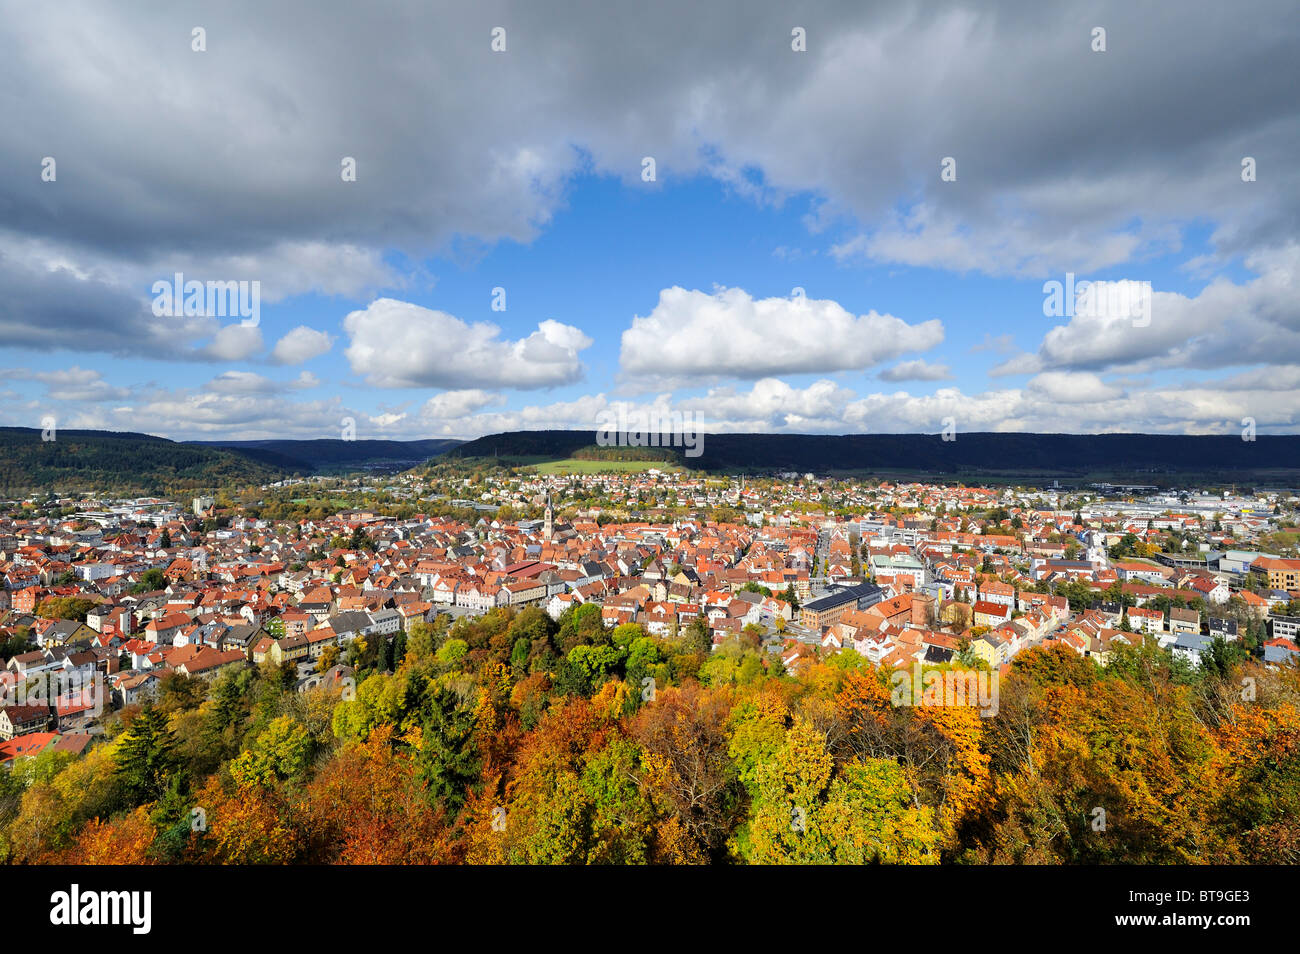 View of the city of Tuttlingen, Baden-Wuerttemberg, Germany, Europe - Stock Image